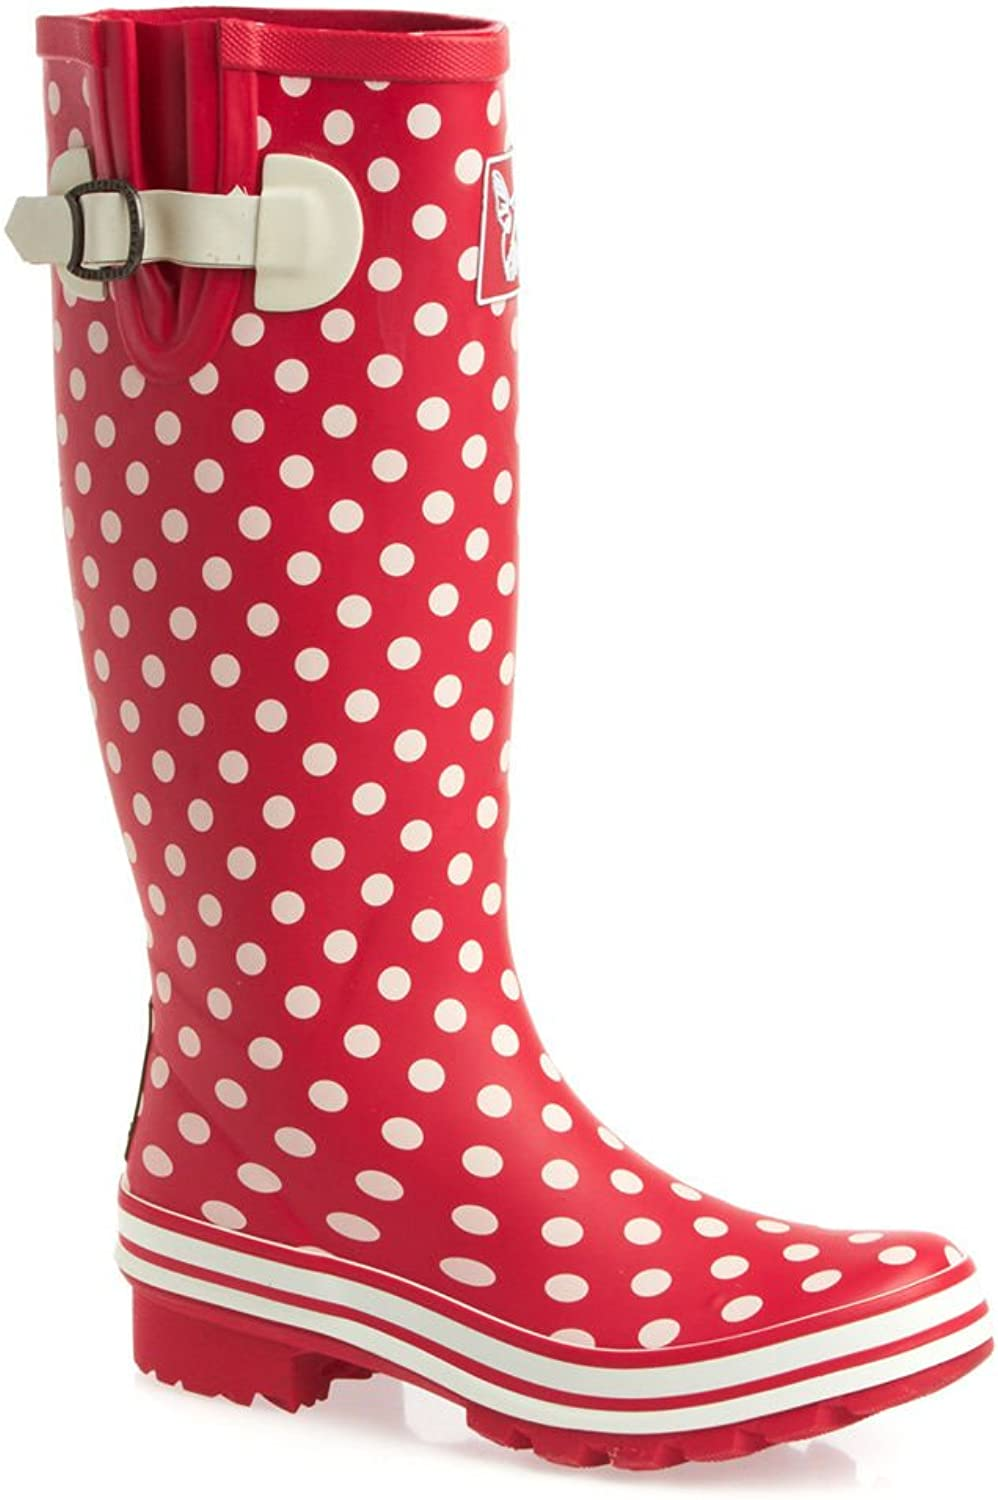 Evercreatures Ditsy Dots Wellies - Tall - UK8 EU41 US10 Red